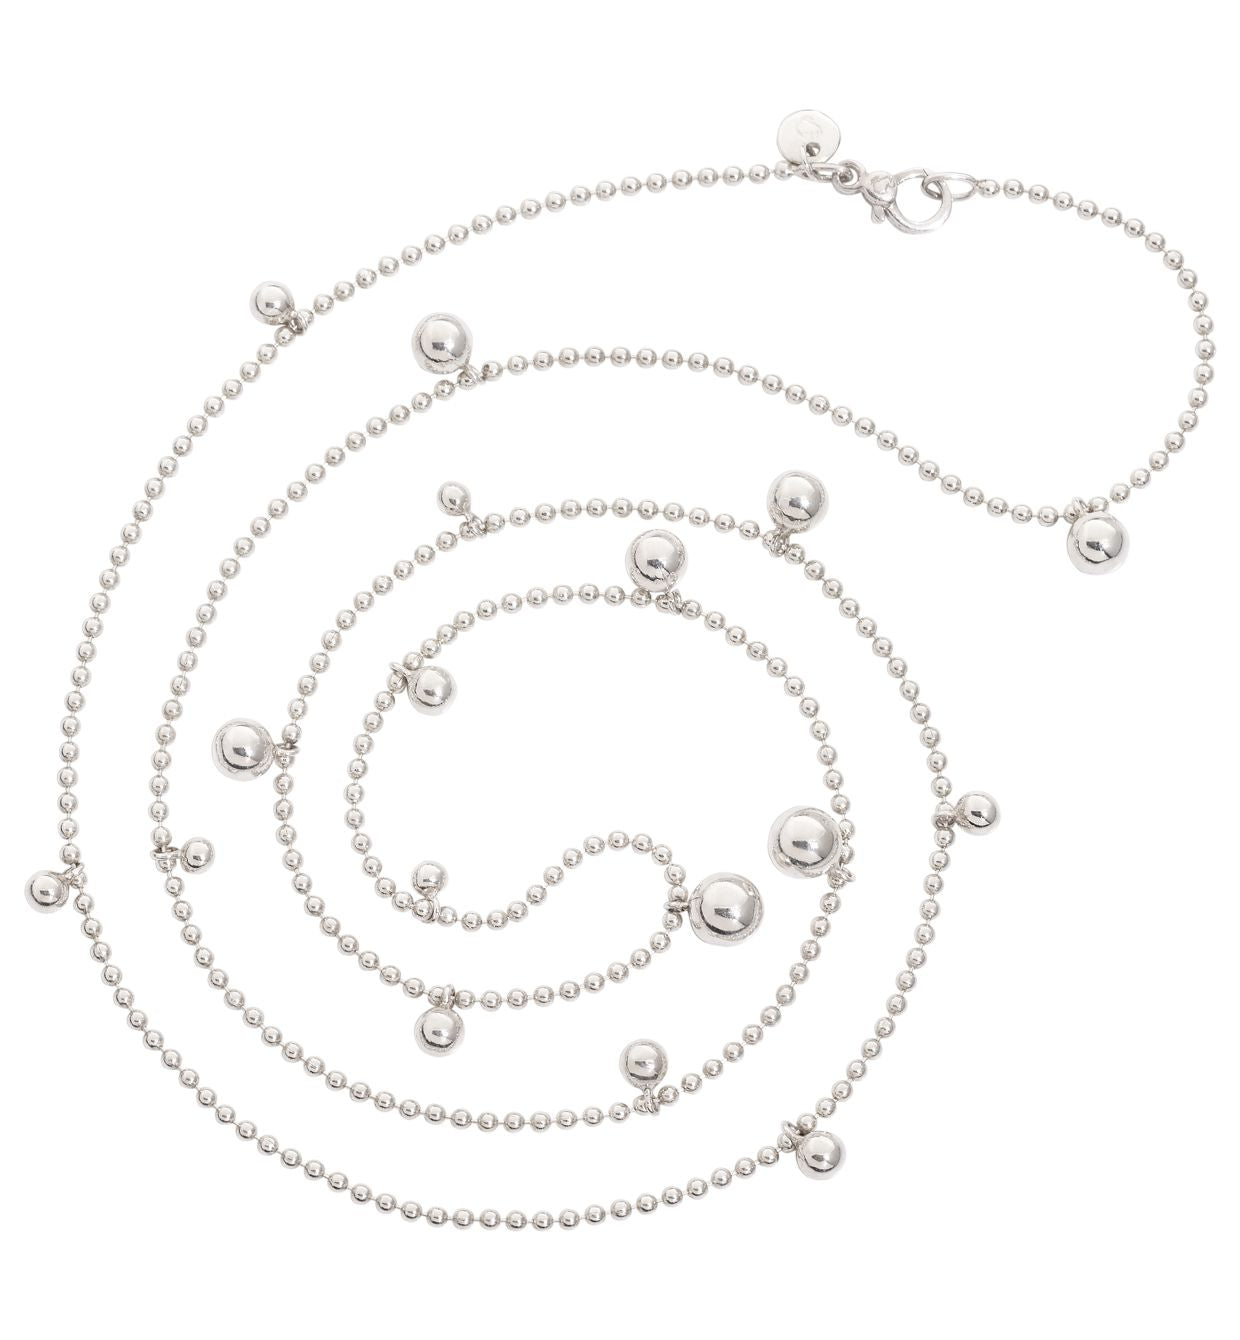 DoDo Bollicine Necklace with Spheres in Silver - Orsini Jewellers NZ